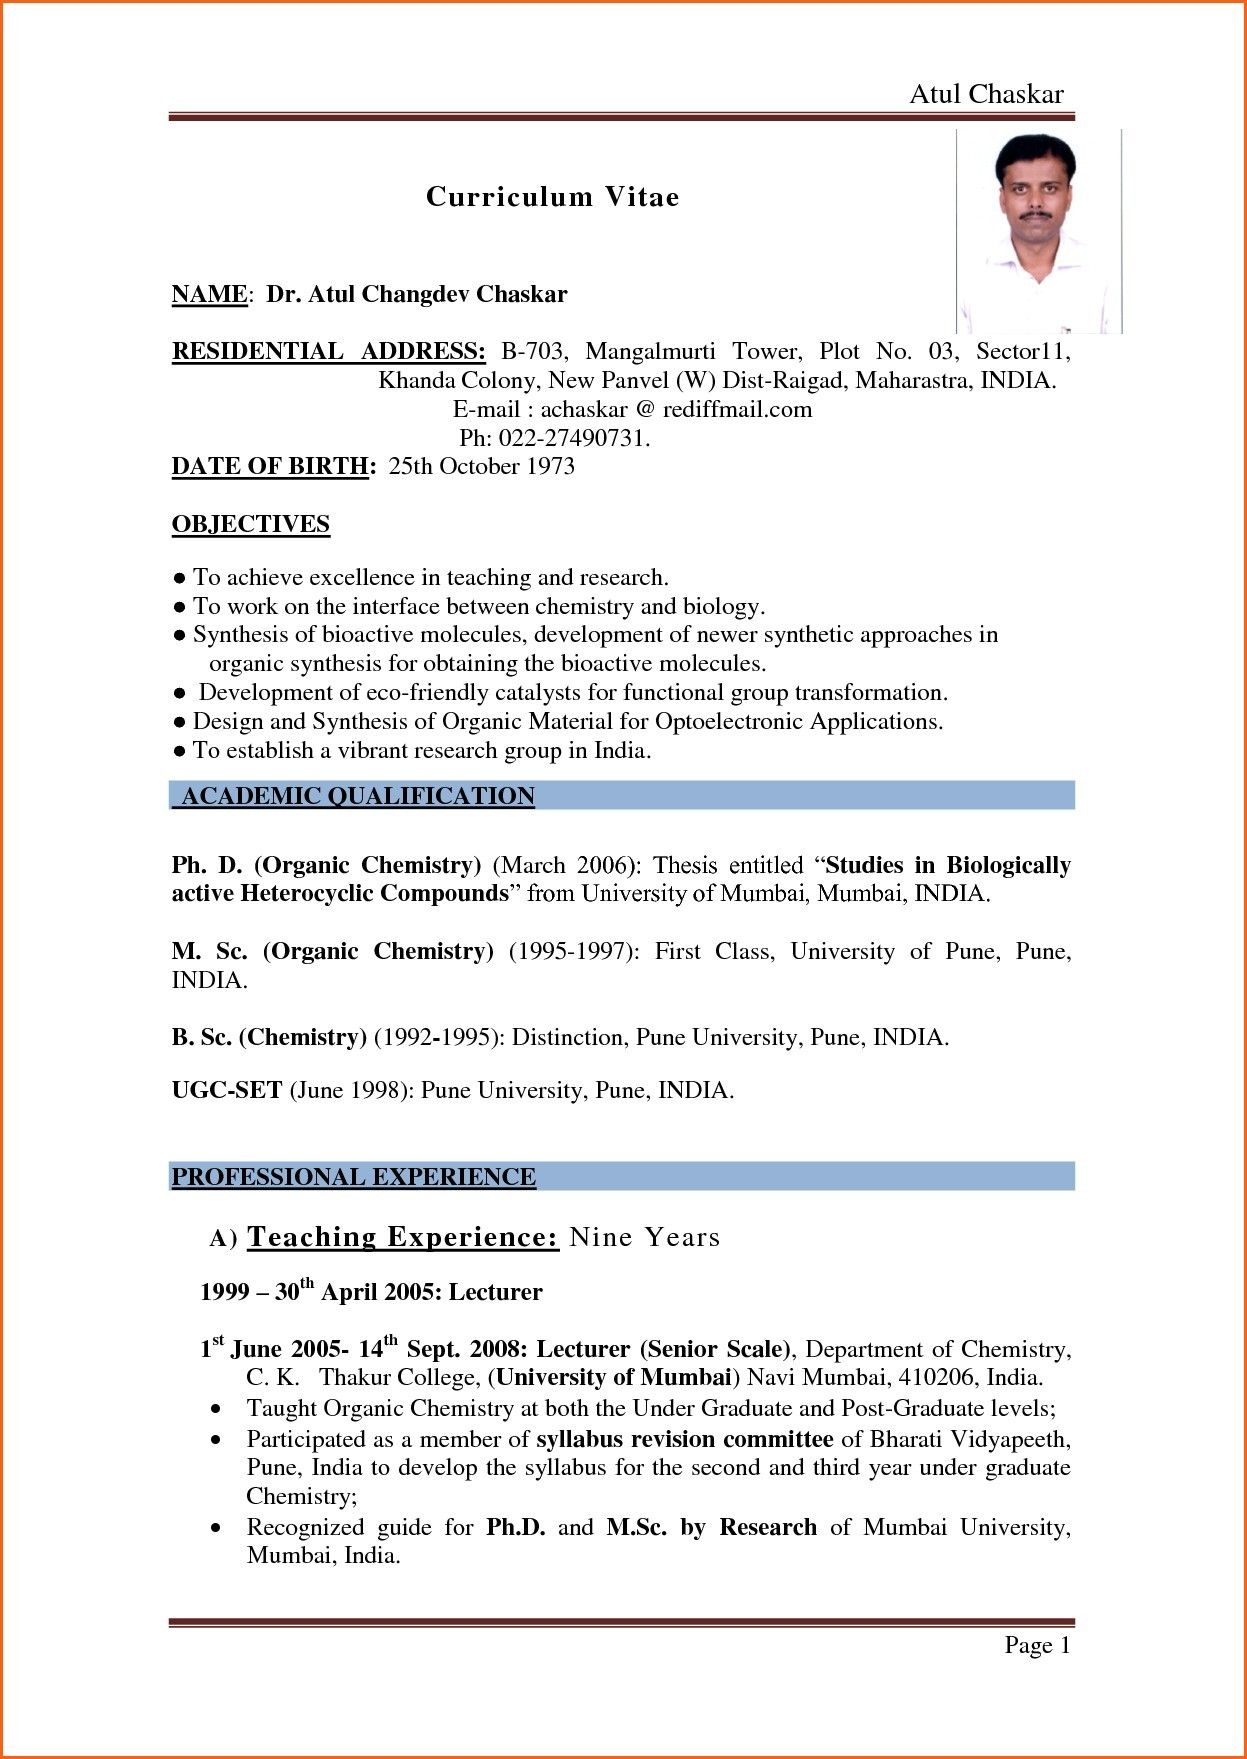 Sample Resume For Teachers In India Pdf At Resume Sample Ideas Rh